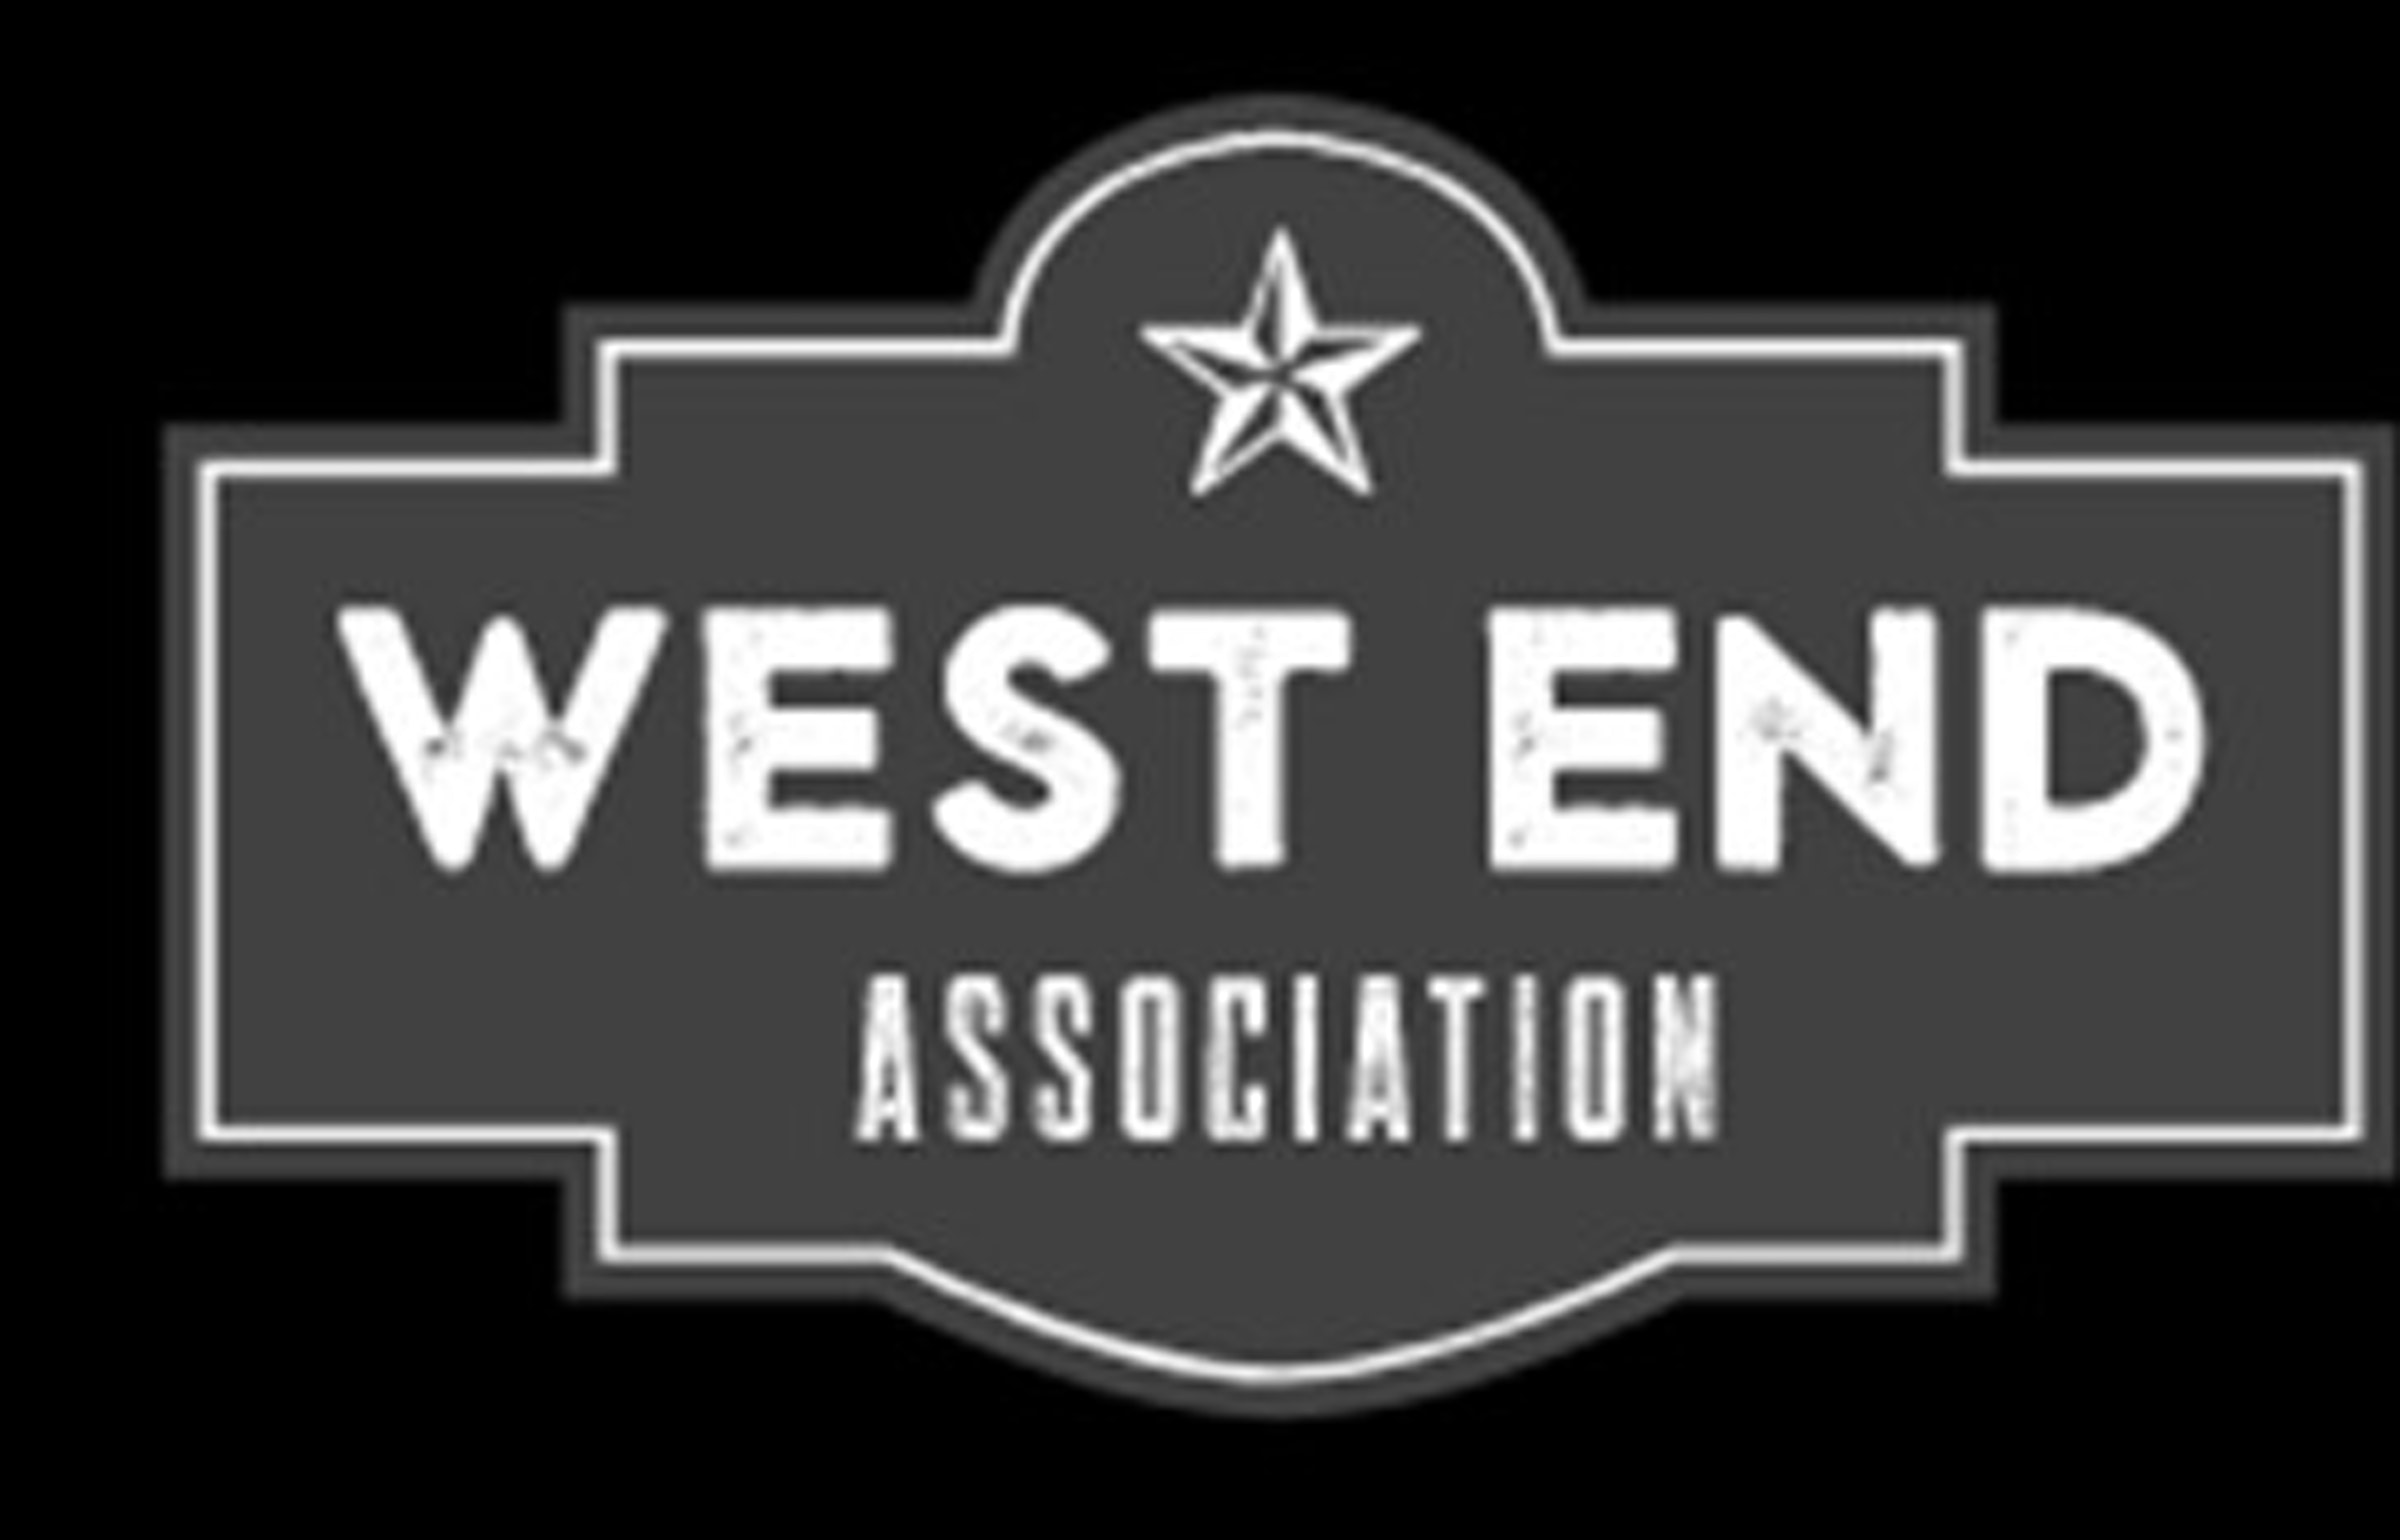 West End Association in Beyond Dallas